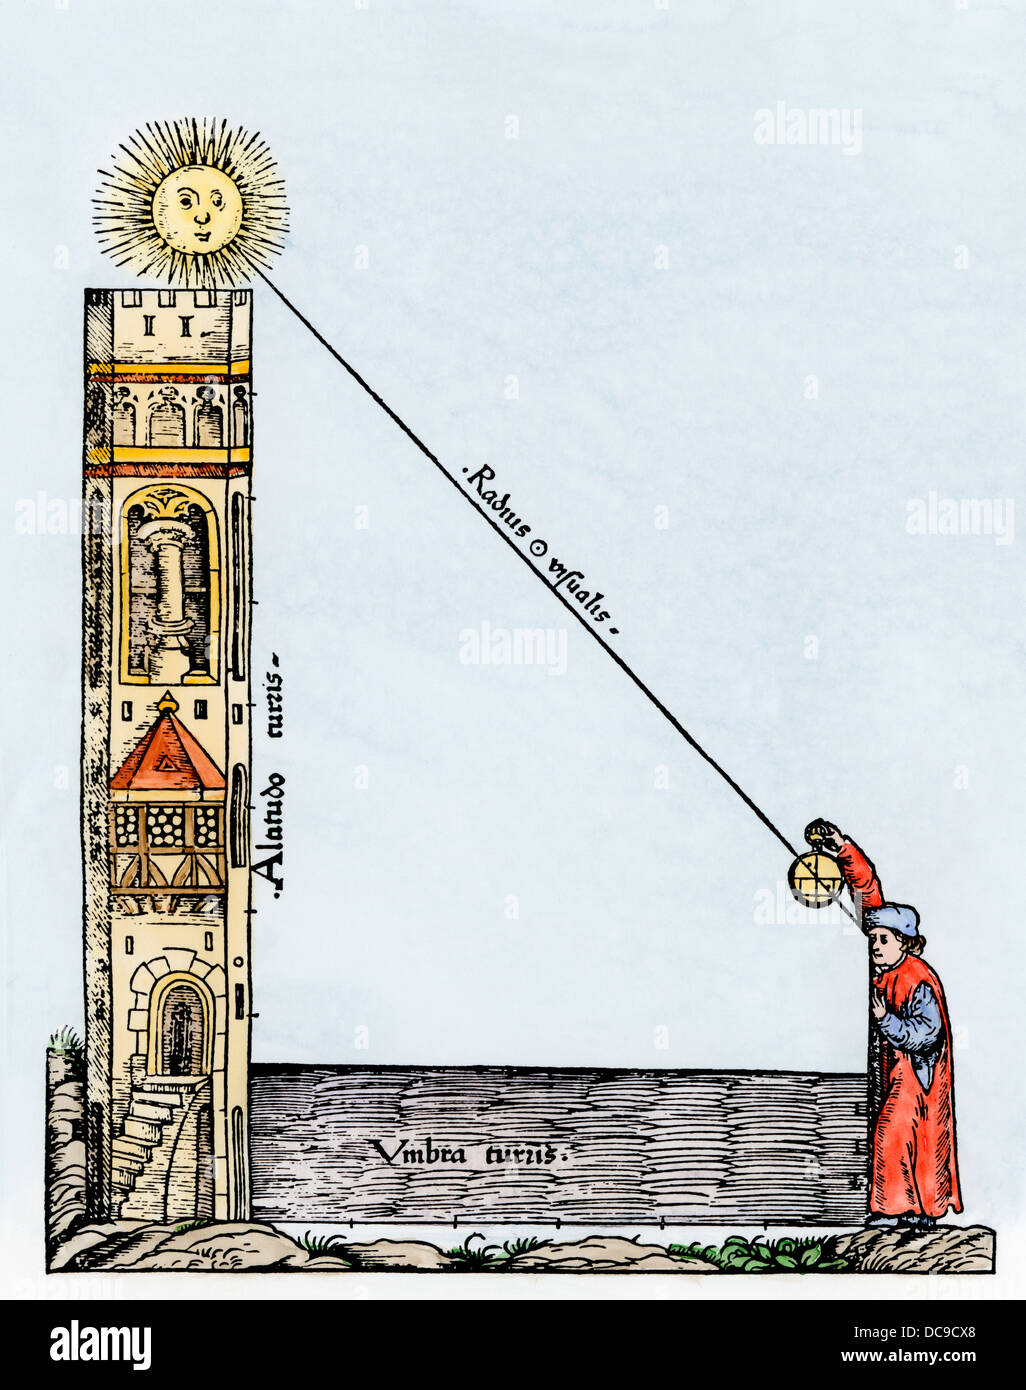 Use of an astrolabe to fix position by sighting on a building of known elevation, the way a ship's mast would - Stock Image